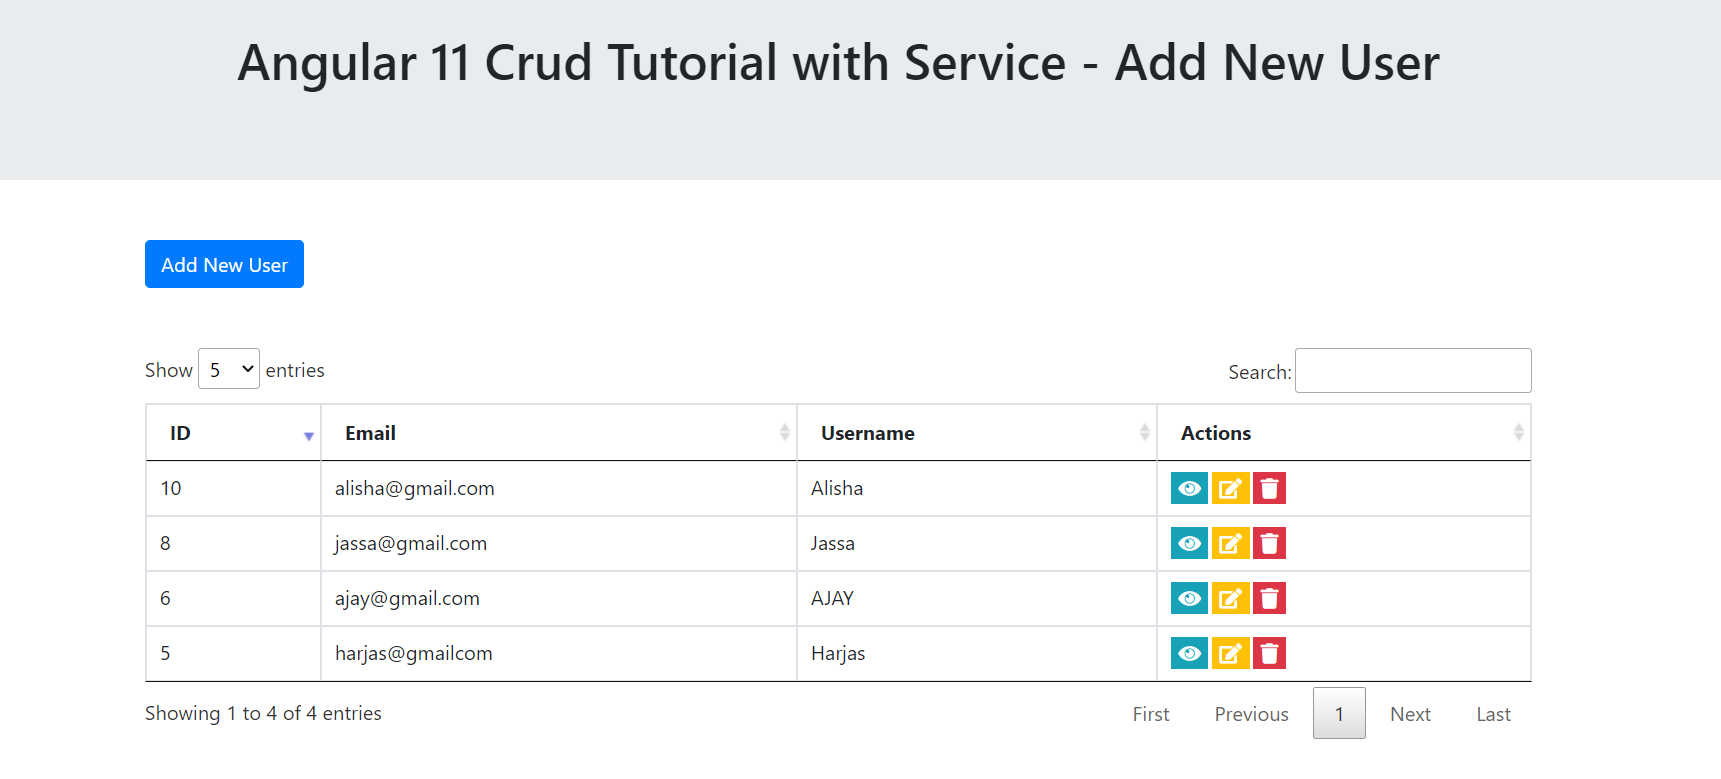 Angular 11 Crud Tutorial with Service - Add New User